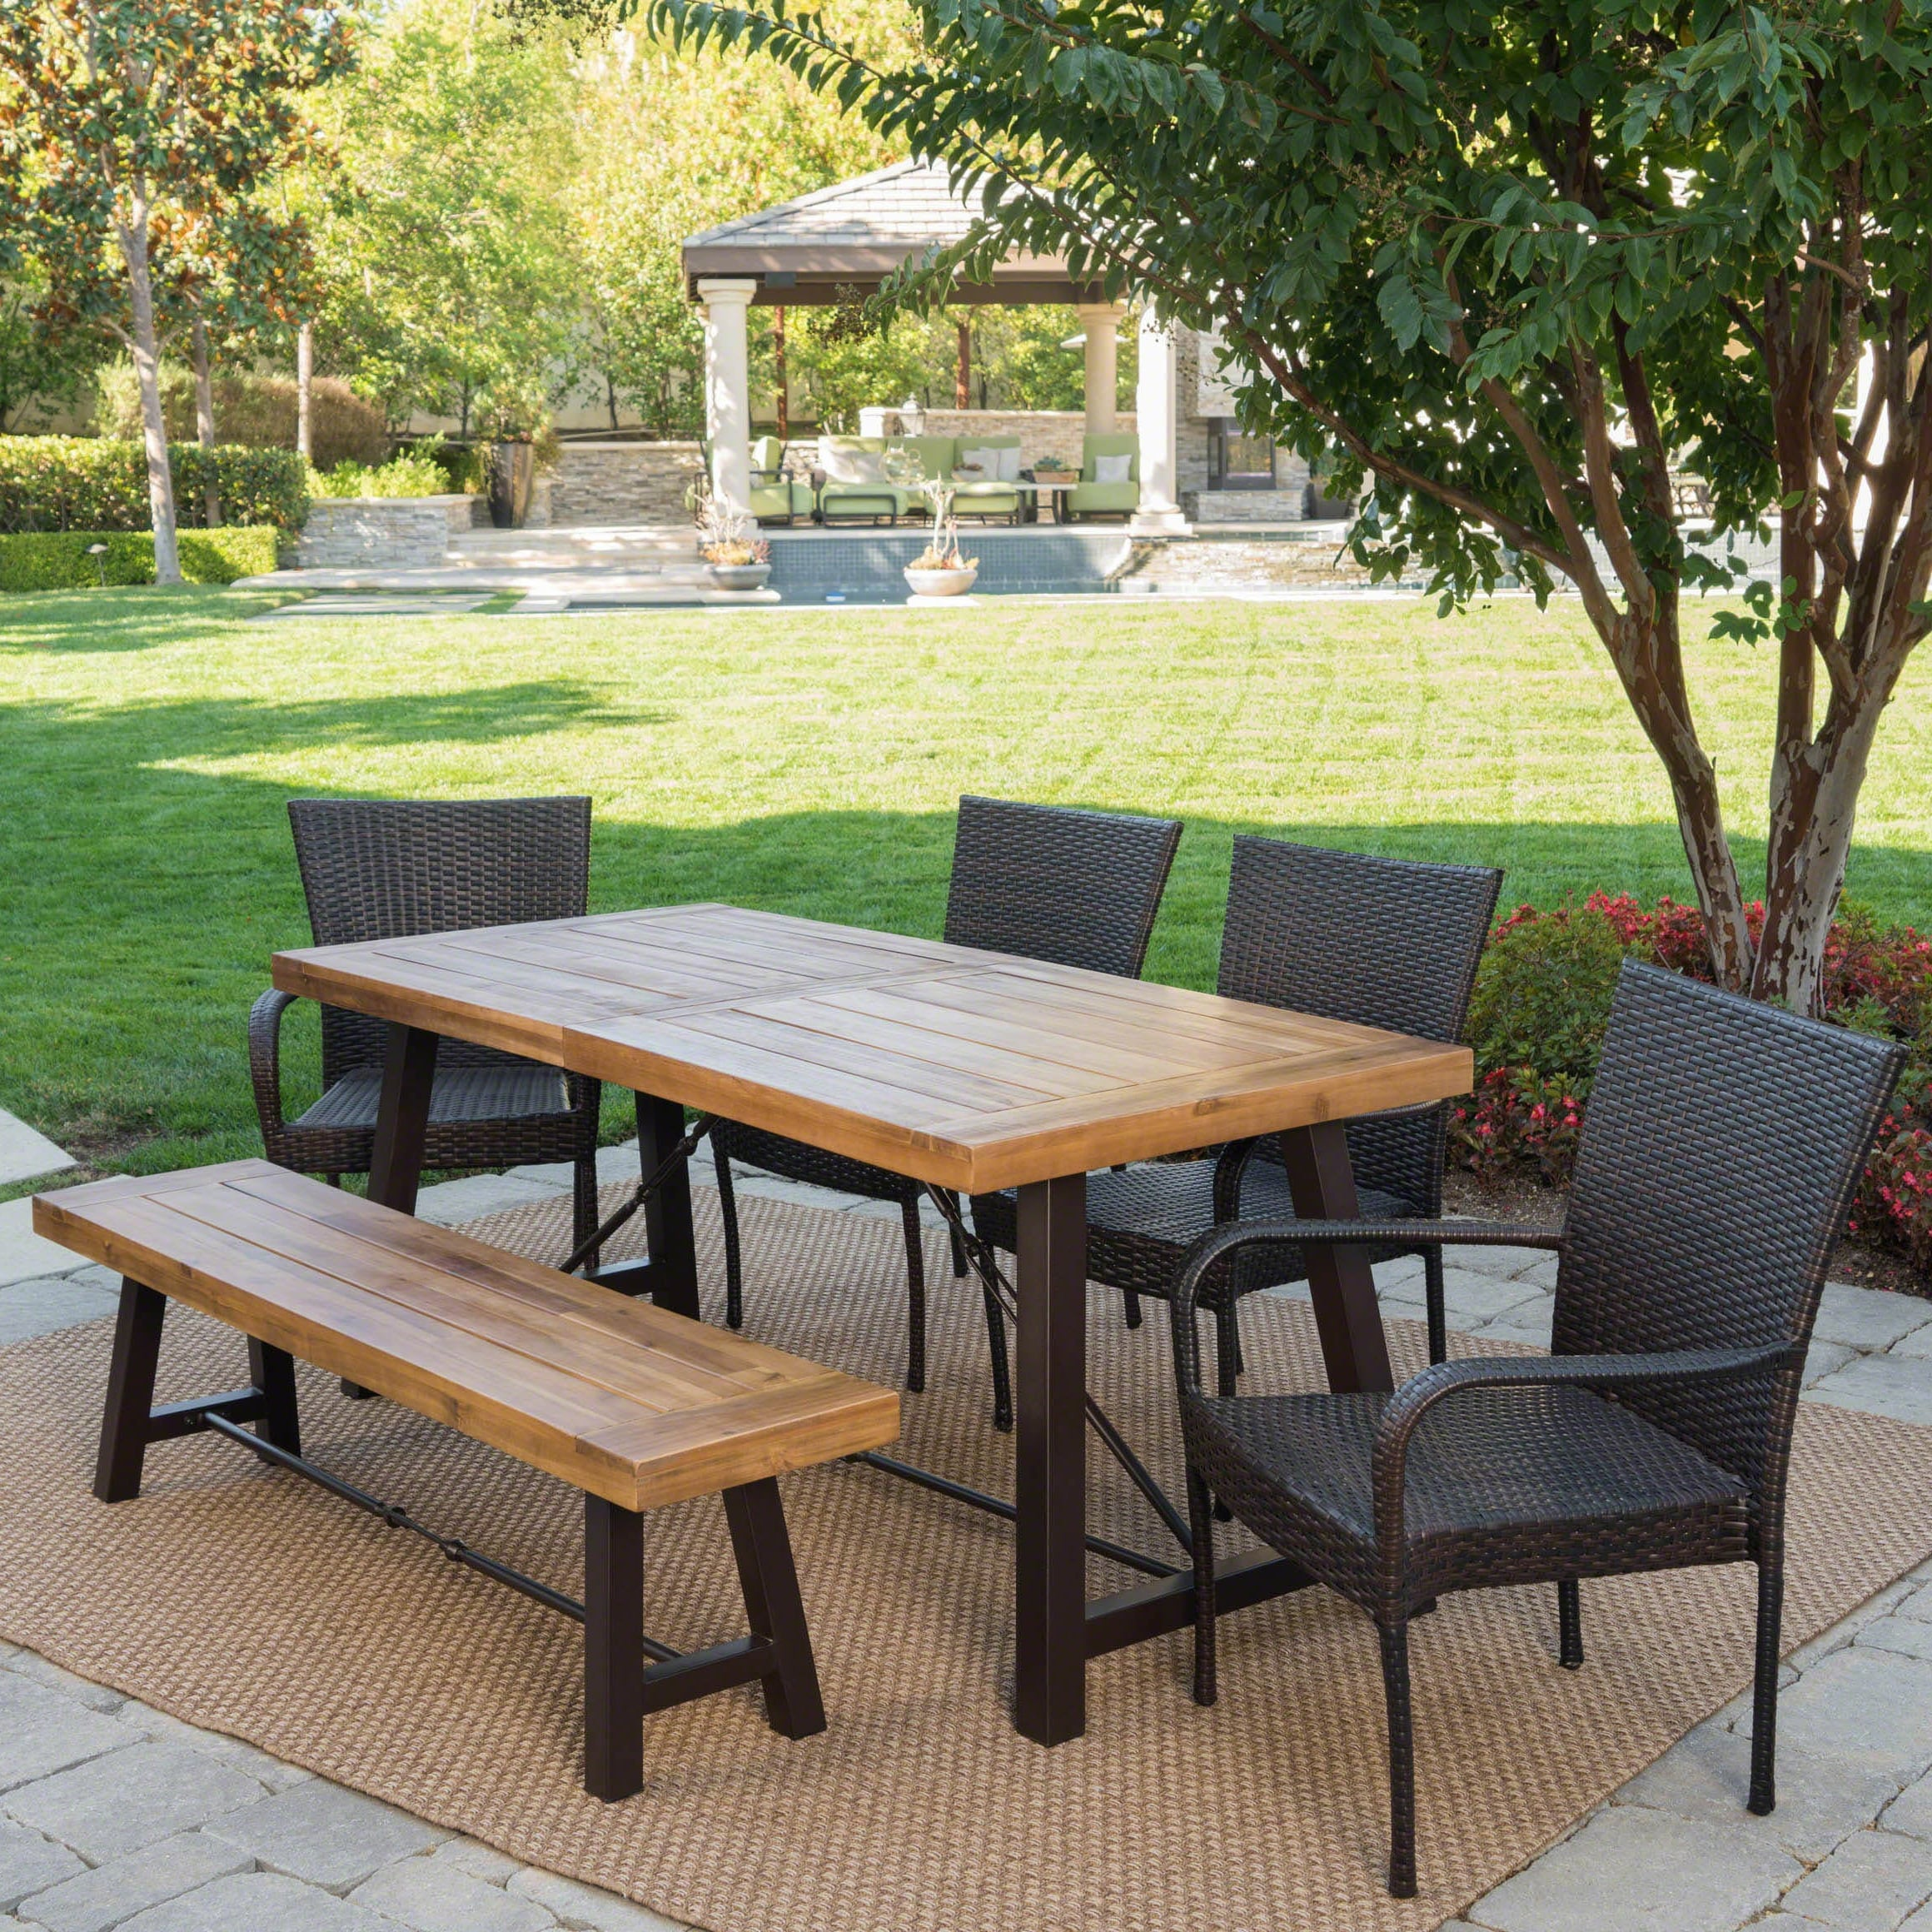 Salons Outdoor 6 Piece Wicker Wood Dining Set By Christopher Knight Home On Sale Overstock 18738223